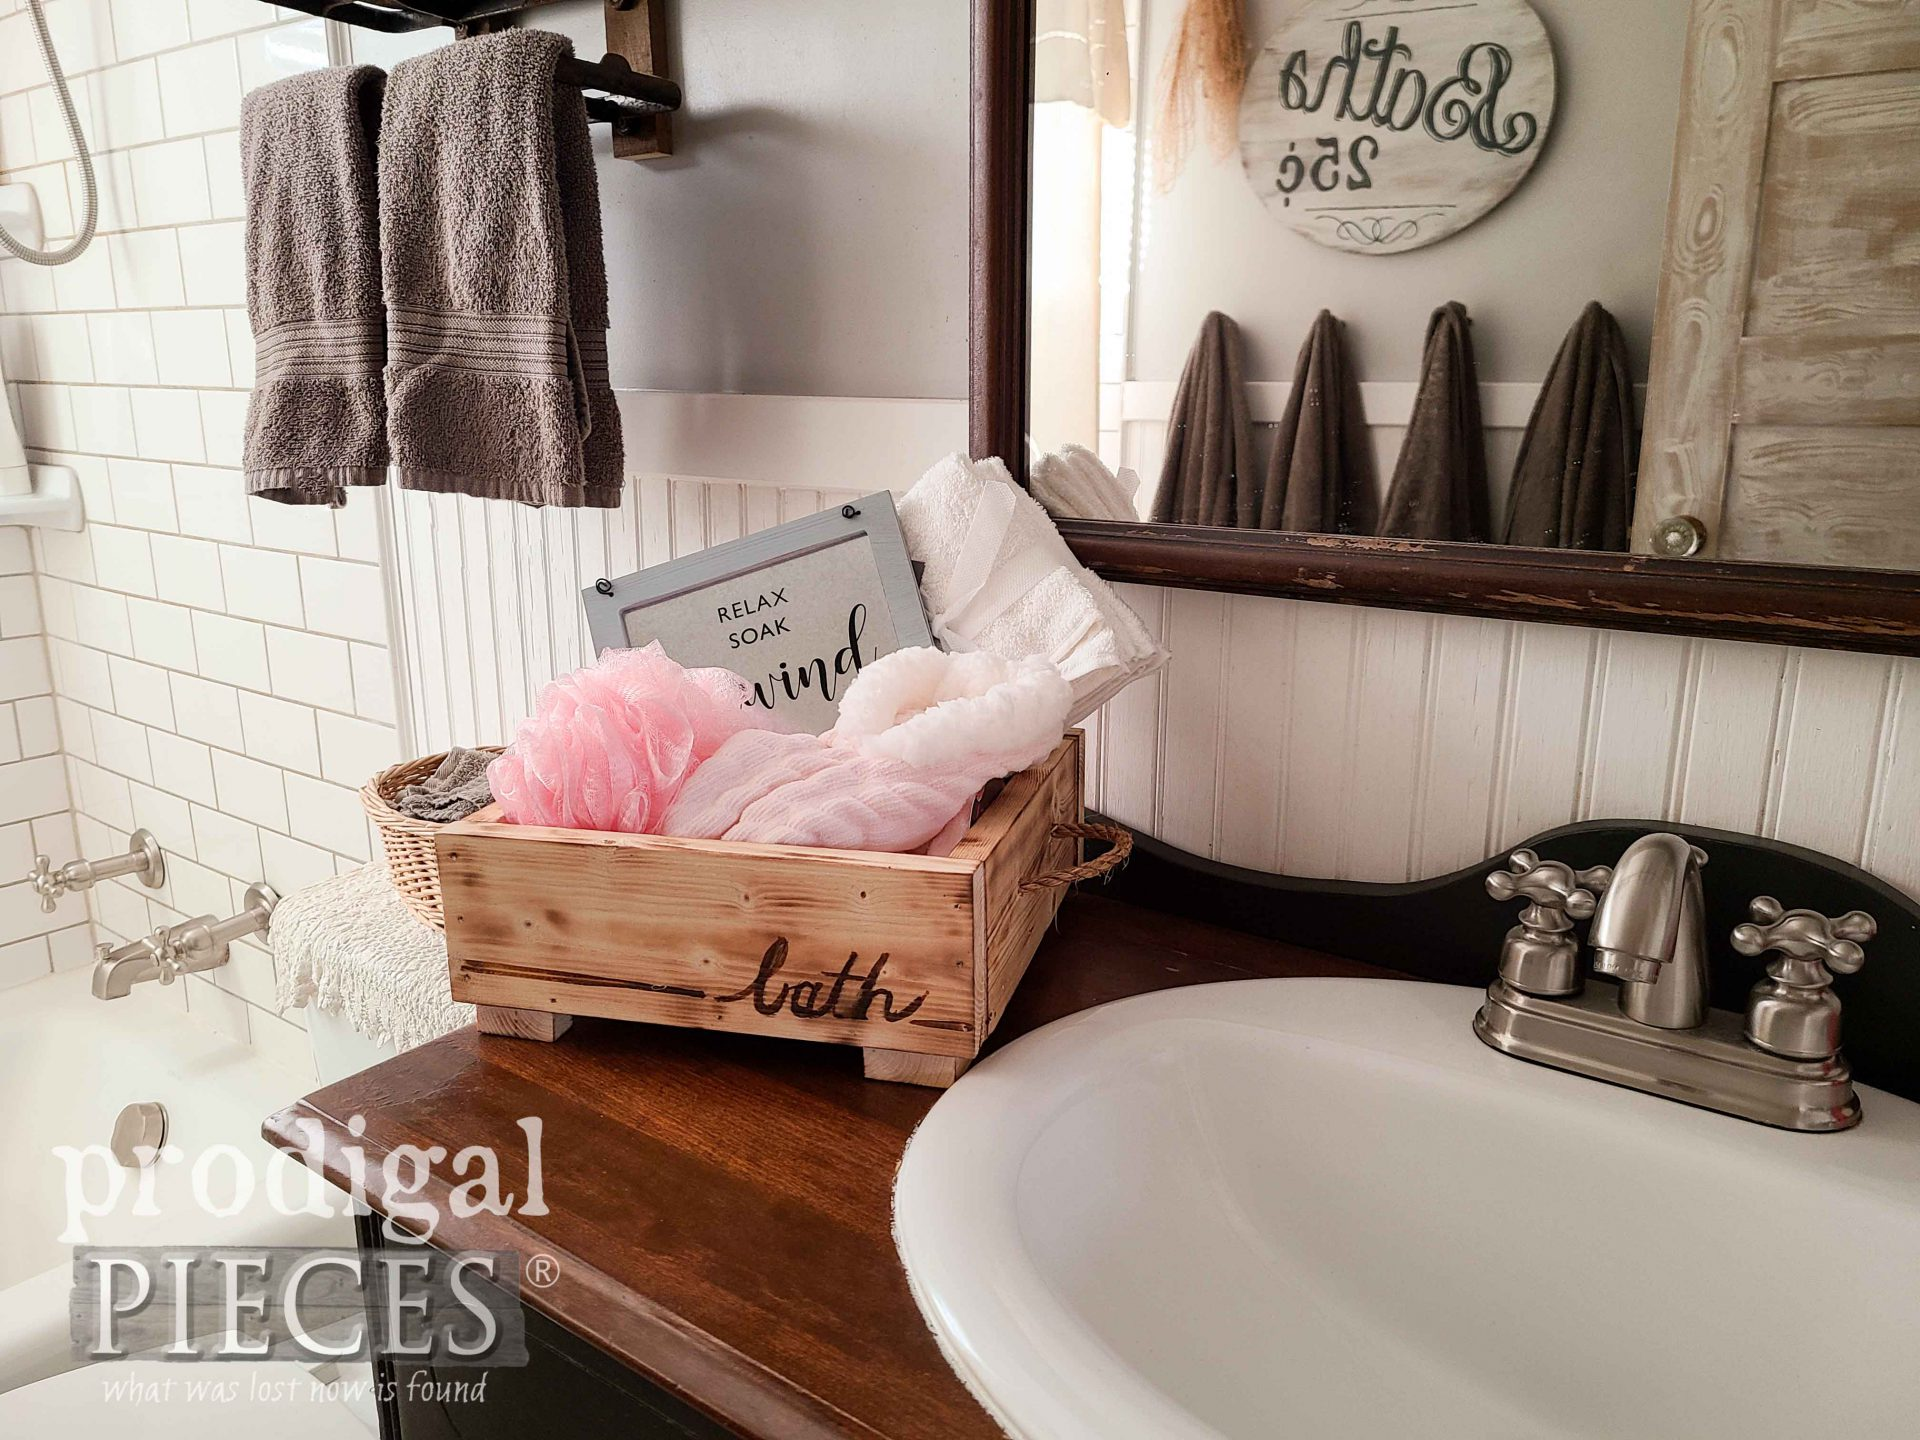 DIY Wooden Gift Box Filled with Bath Goodies by Larissa of Prodigal Pieces | prodigalpieces.com #prodigalpieces #diy #woodworking #gift #christmas #lastminute #handmade #home #homedecor